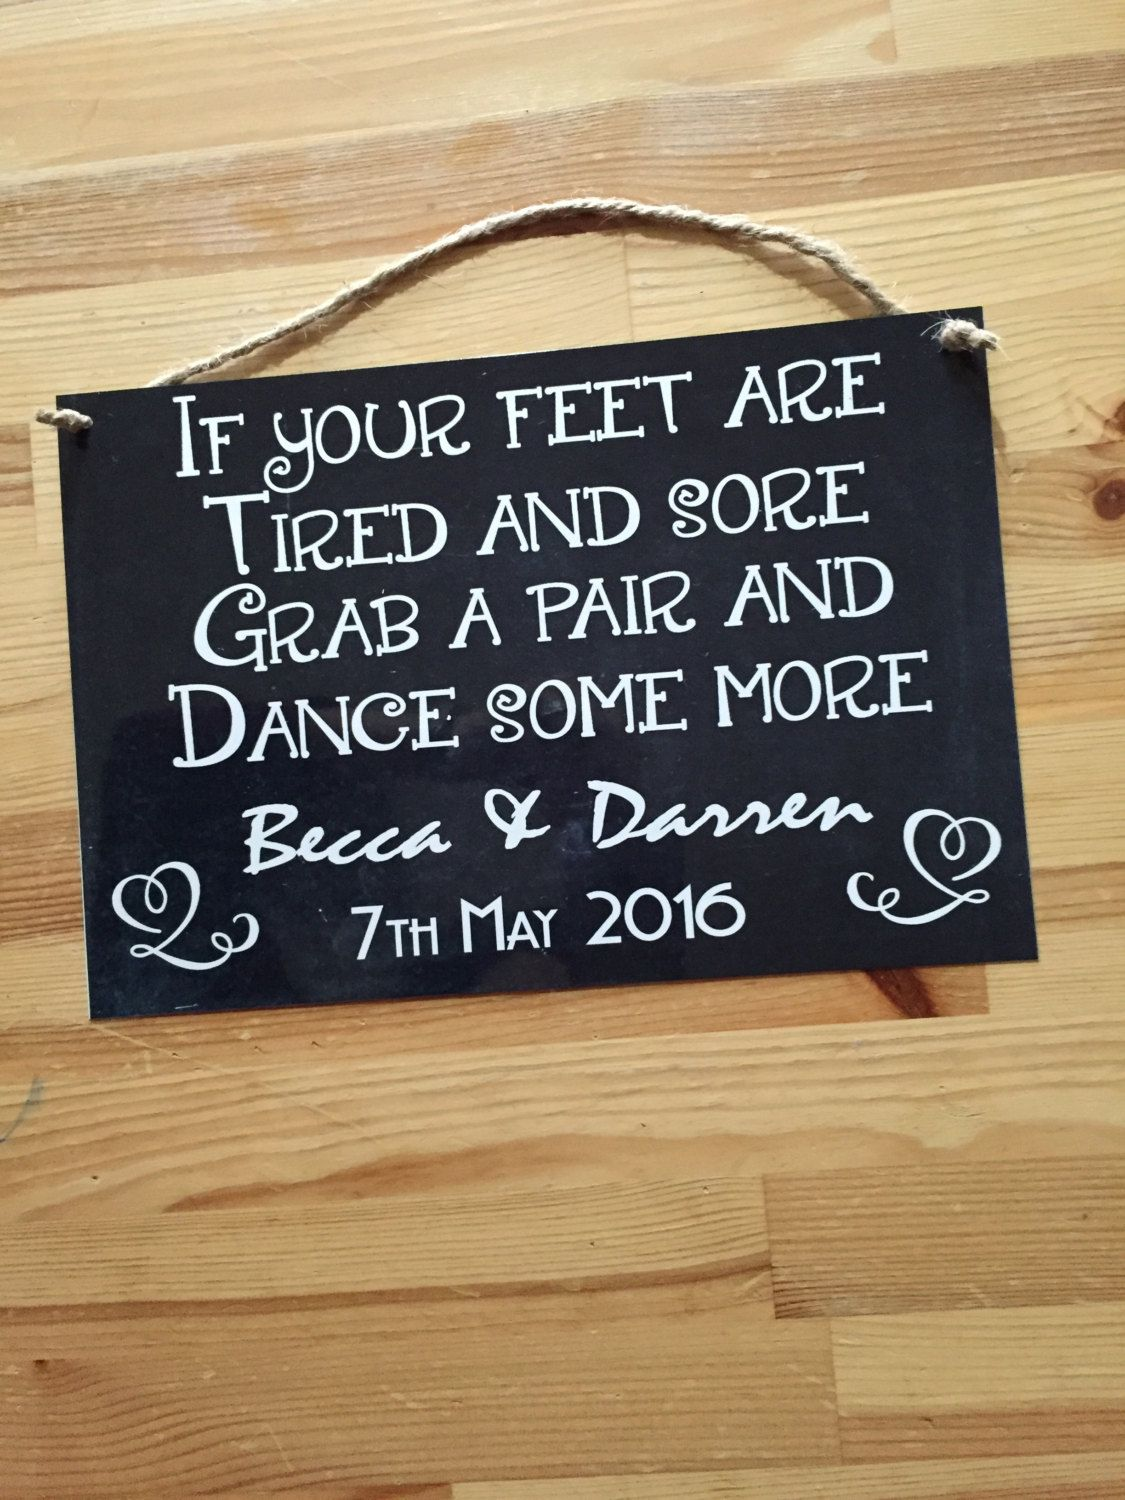 wedding sign if your feet are tired and sore grab a pair and dance some more personalised aluminium wedding sign for flip flops for guests